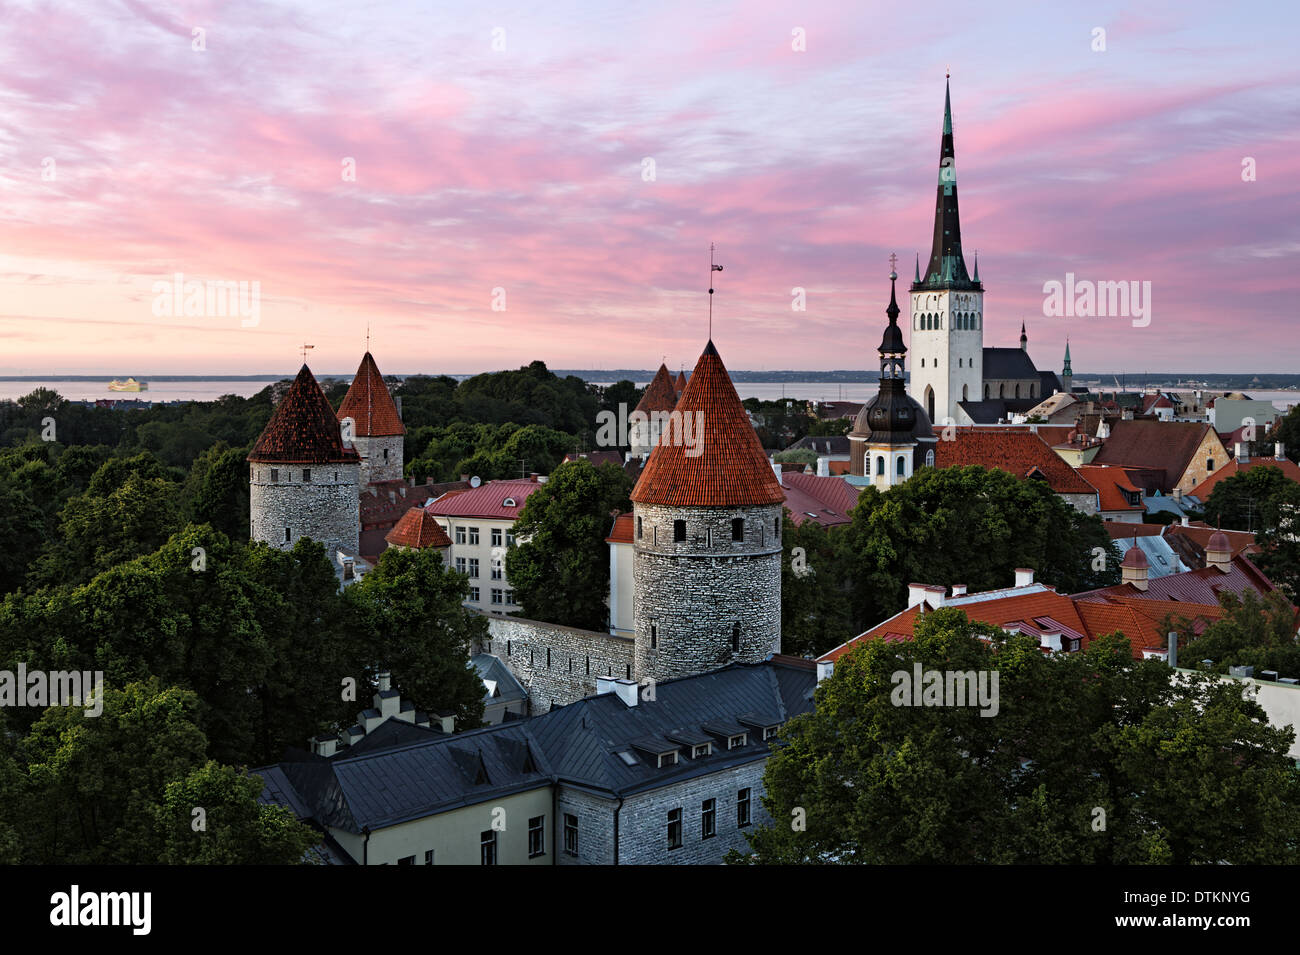 Panoramic view of Tallinn old city center - Stock Image